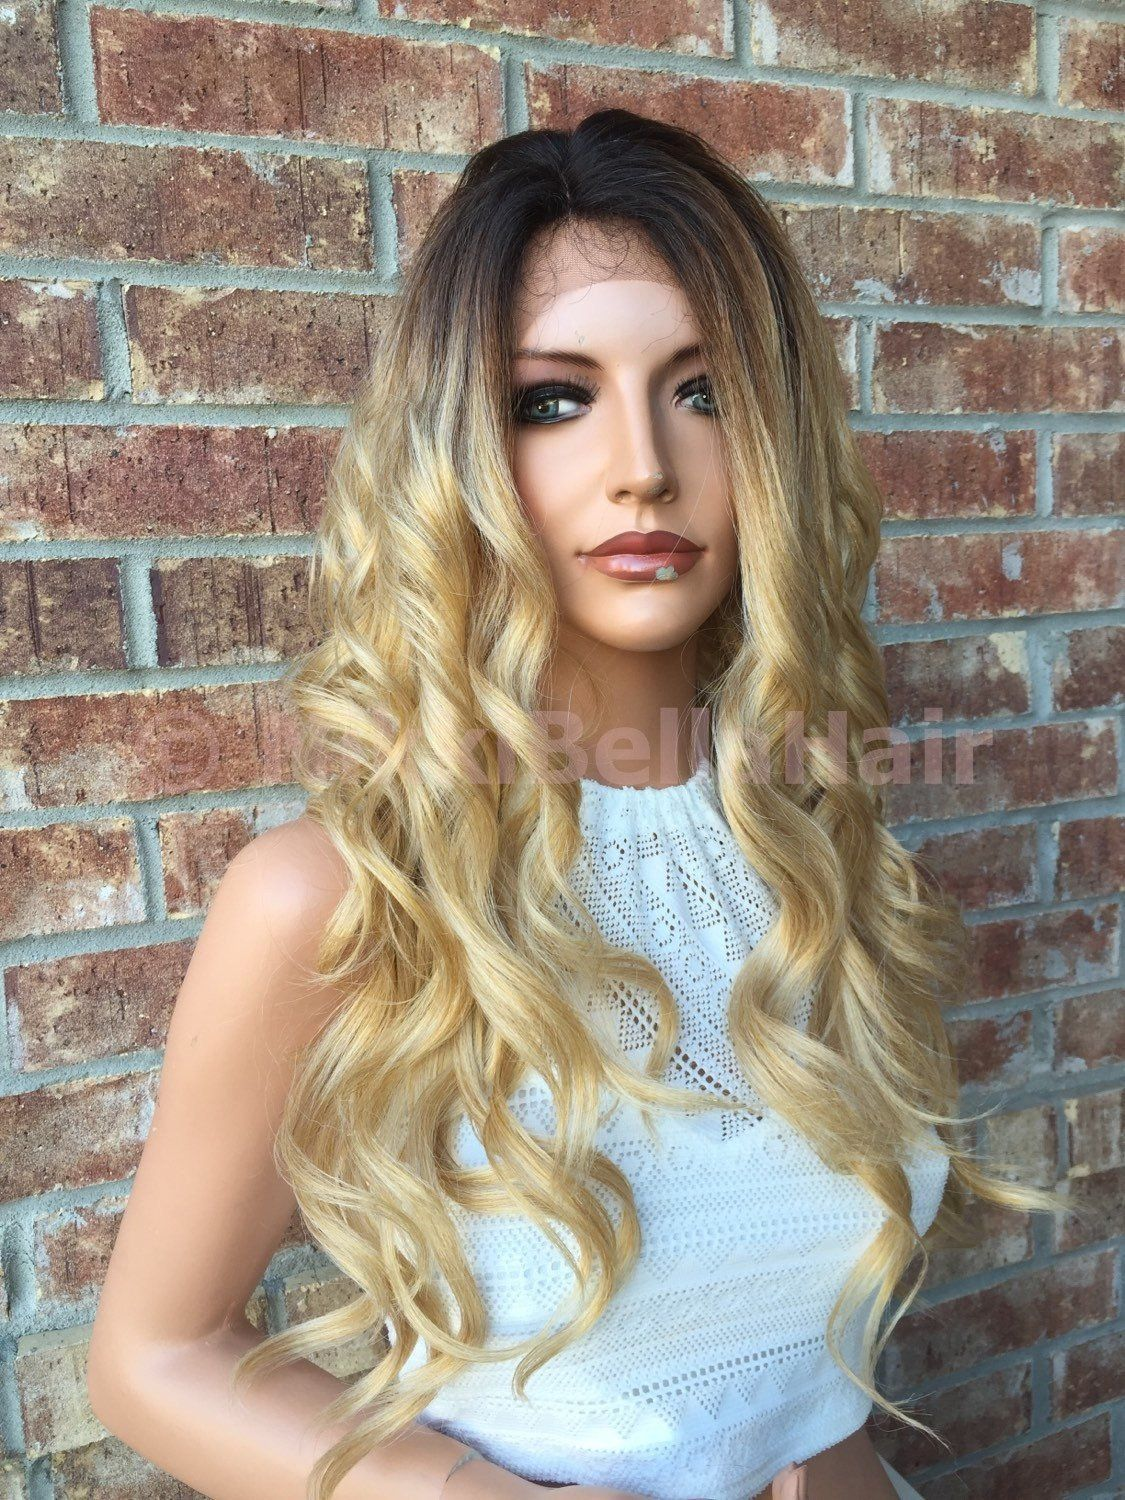 2020 Fashion Blonde Wigs For White Women Blond With Lowlights High Lift Dye Ombre Ash Blonde Wig Wella T18 Uk Toning Brassy Hair Lace Frontal Wigs